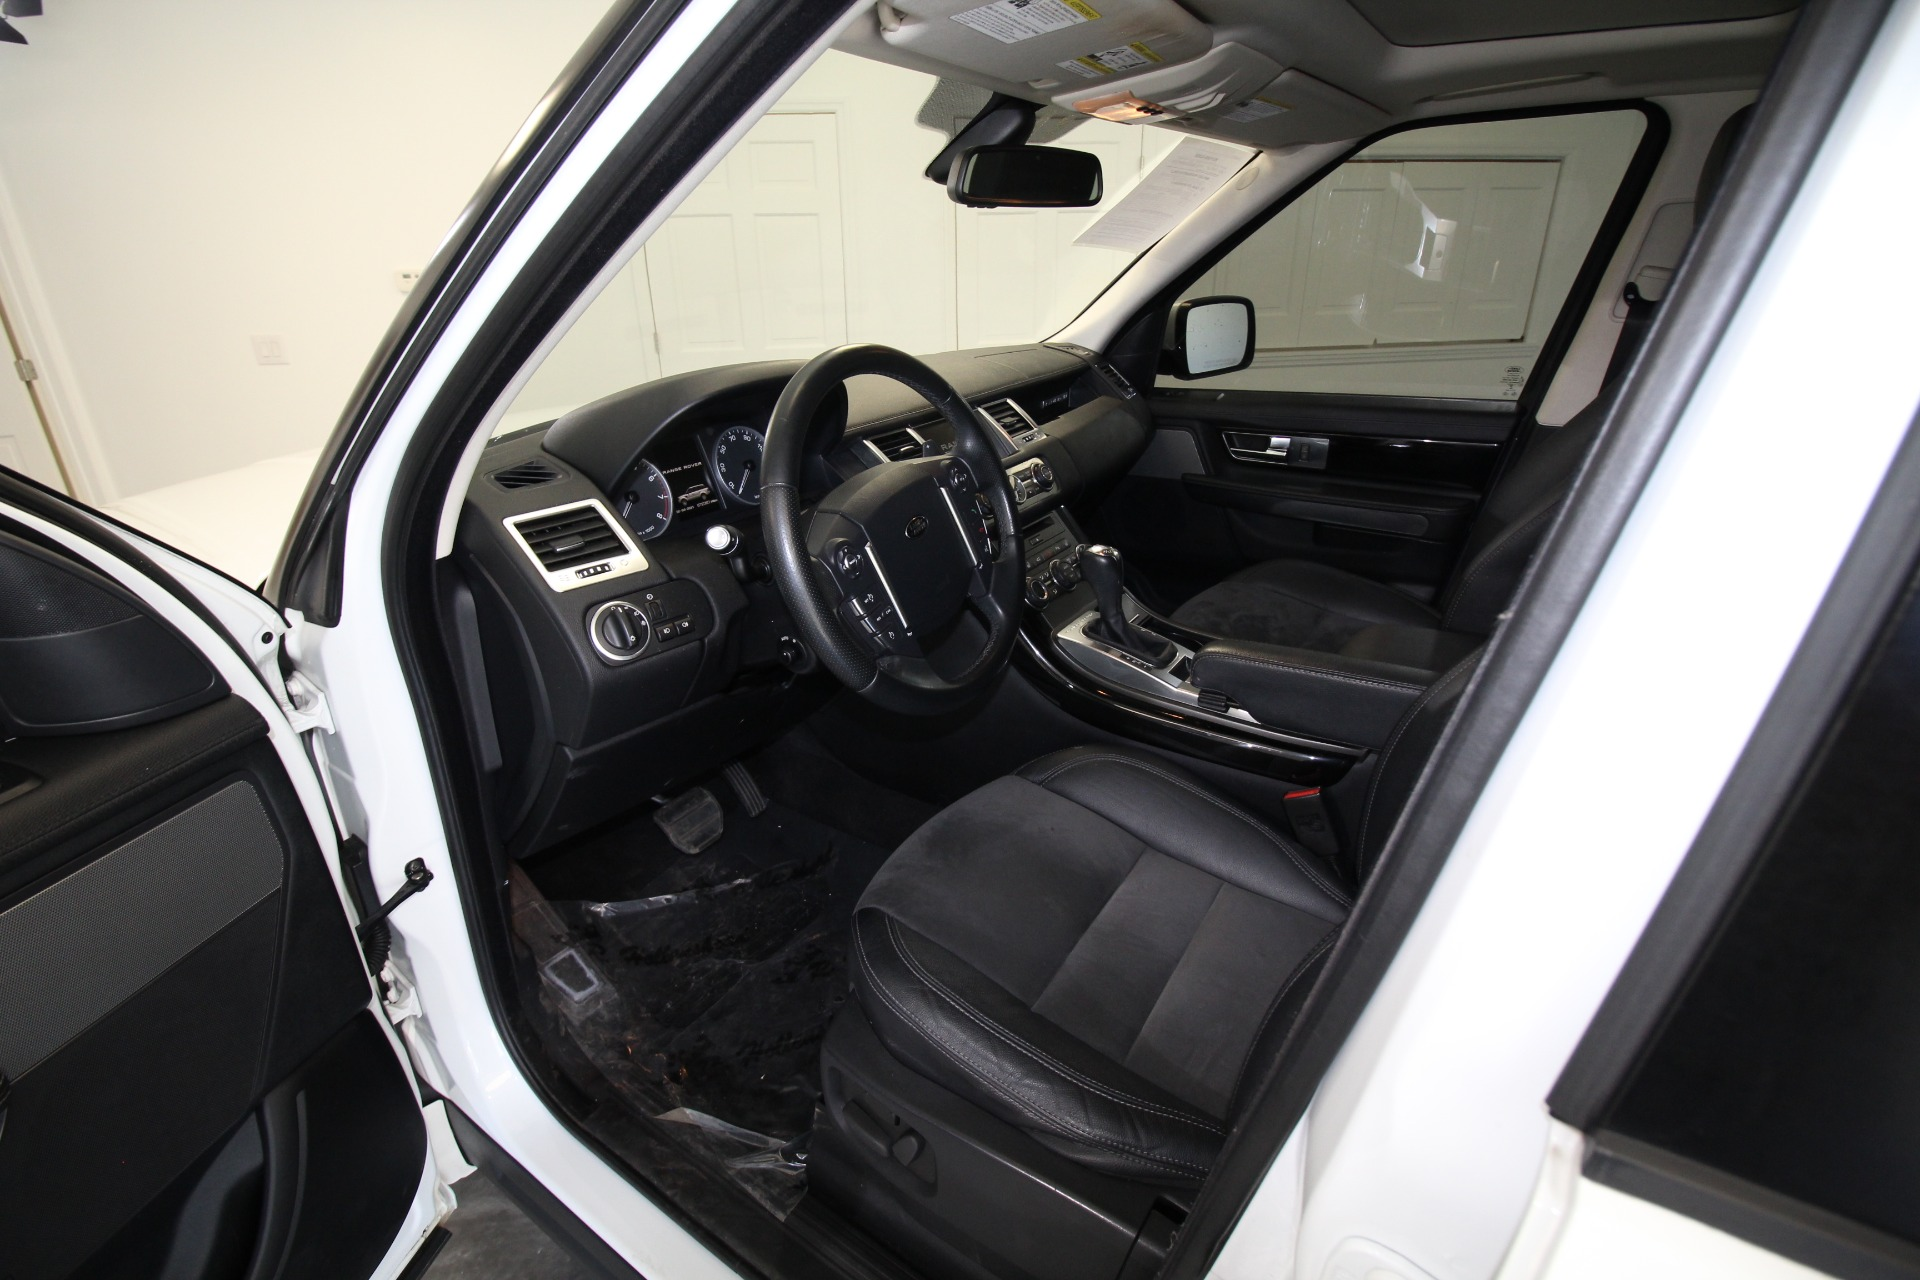 Used 2013 Land Rover Range Rover Sport HSE GT LE LIMITED EDITION SUPER HOT AND HARD TO FIND | Albany, NY